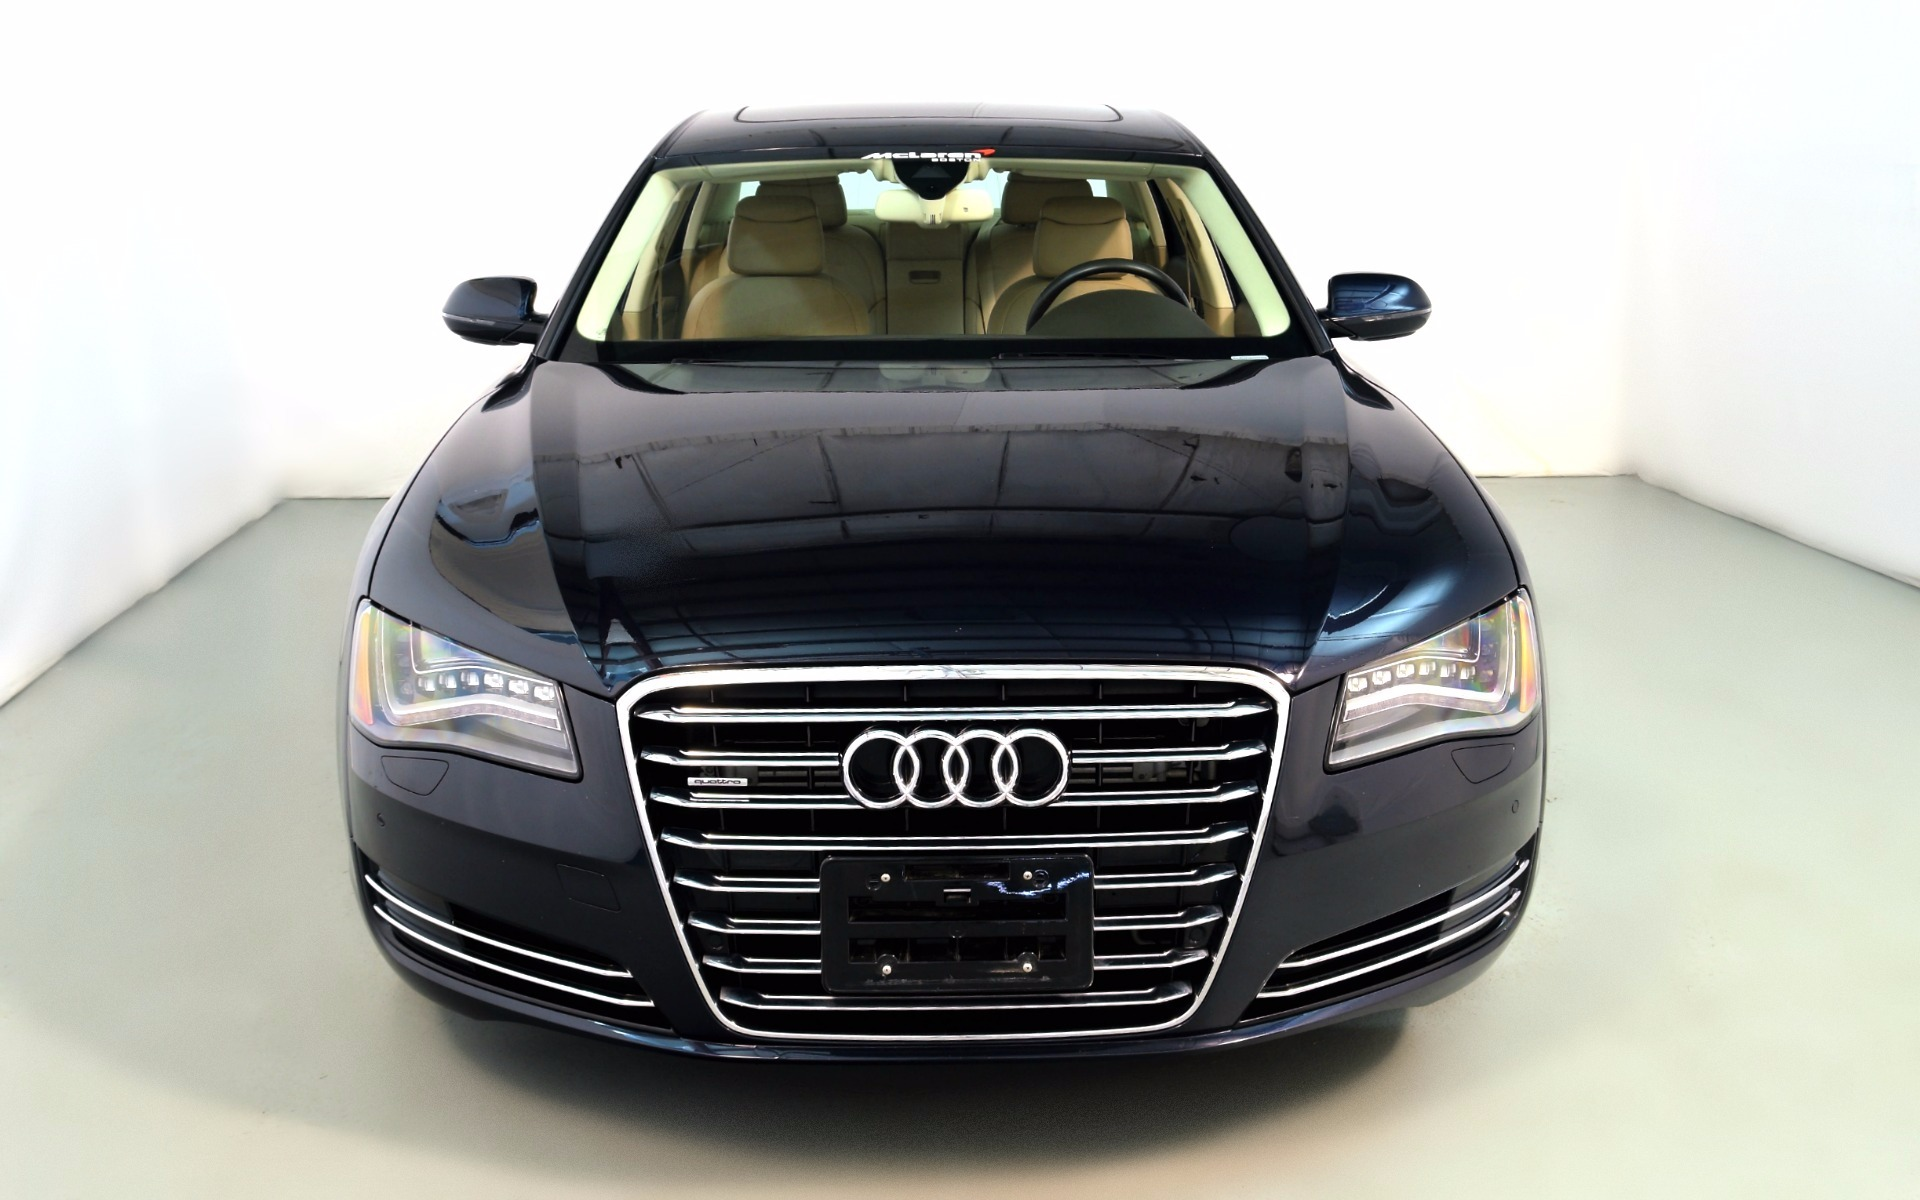 2013 audi a8 l 3 0t quattro for sale in norwell ma 006606 mclaren boston. Black Bedroom Furniture Sets. Home Design Ideas